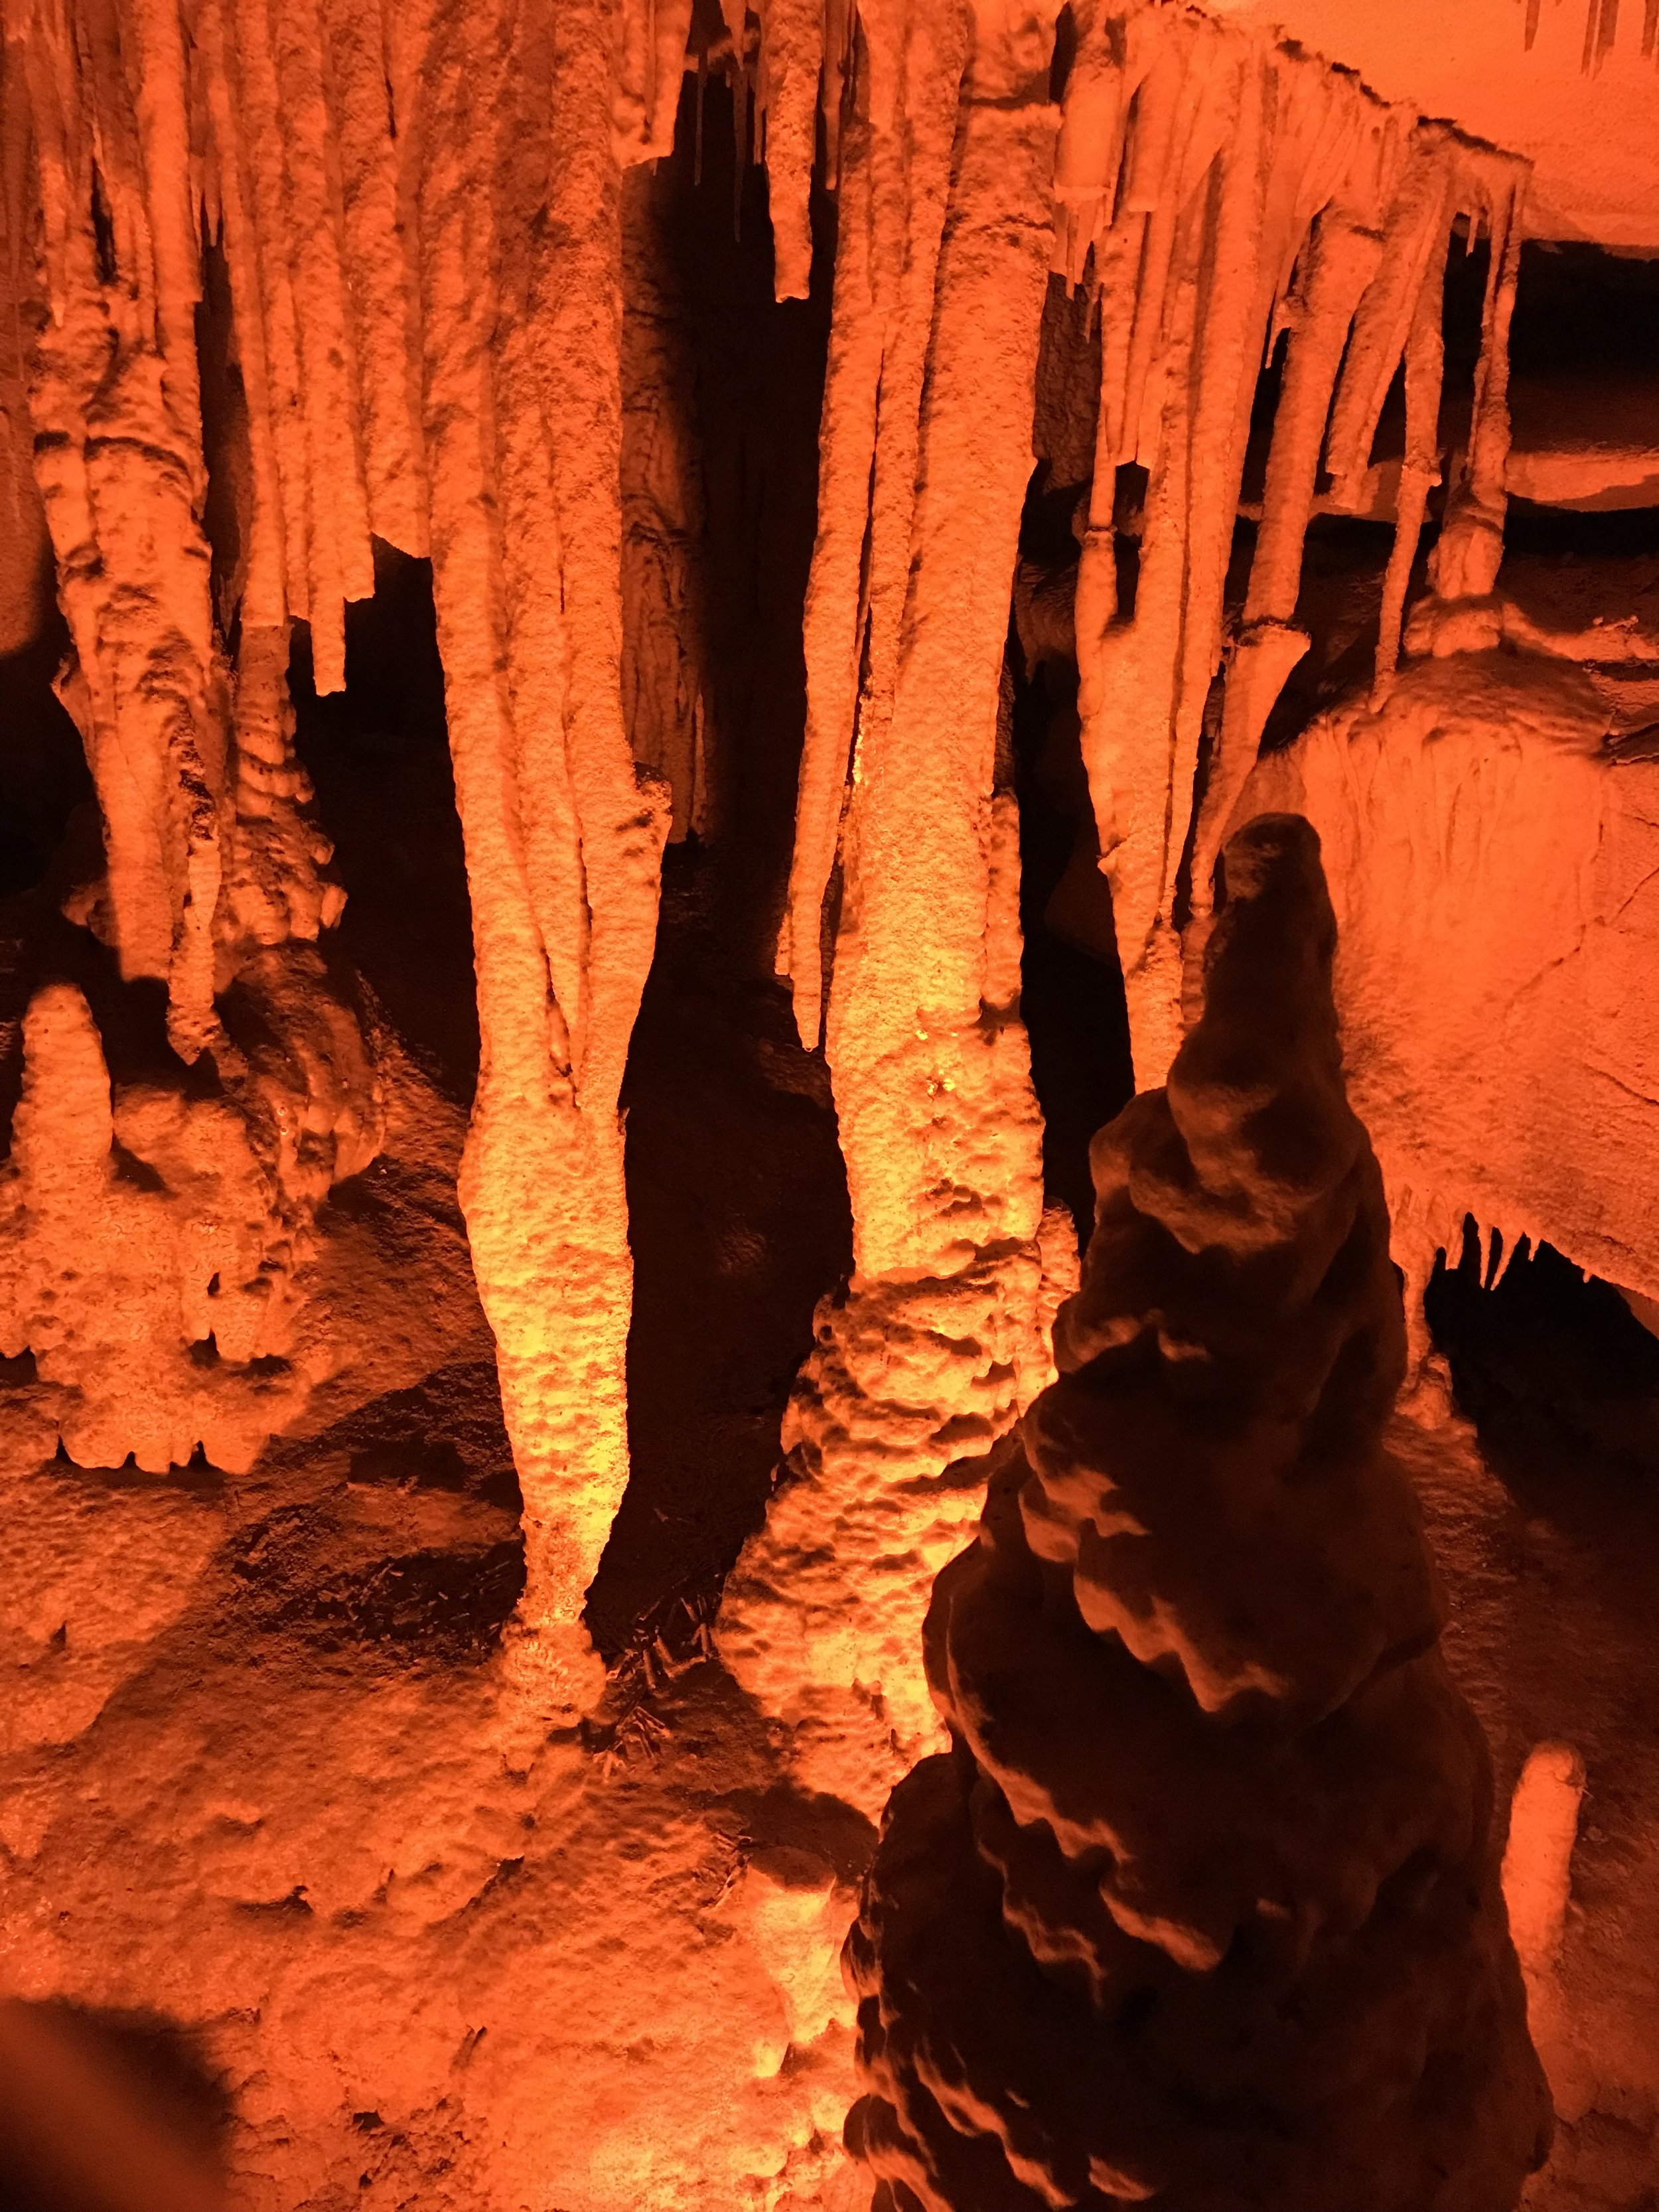 """Here is a view of the stalactites, stalagmites, and columns that we saw at the end of our Domes and Dripstones tour at Mammoth Cave. The only lights in the cave were the occasional orange low lights that lit our way. No flash photography. So amazing the long process that it has taken for these rock formations to """"grow."""" It was also very cool when our tour guide turned off all the lights in the cave. We could see absolutely nothing! How often do we experience zero light like that?"""